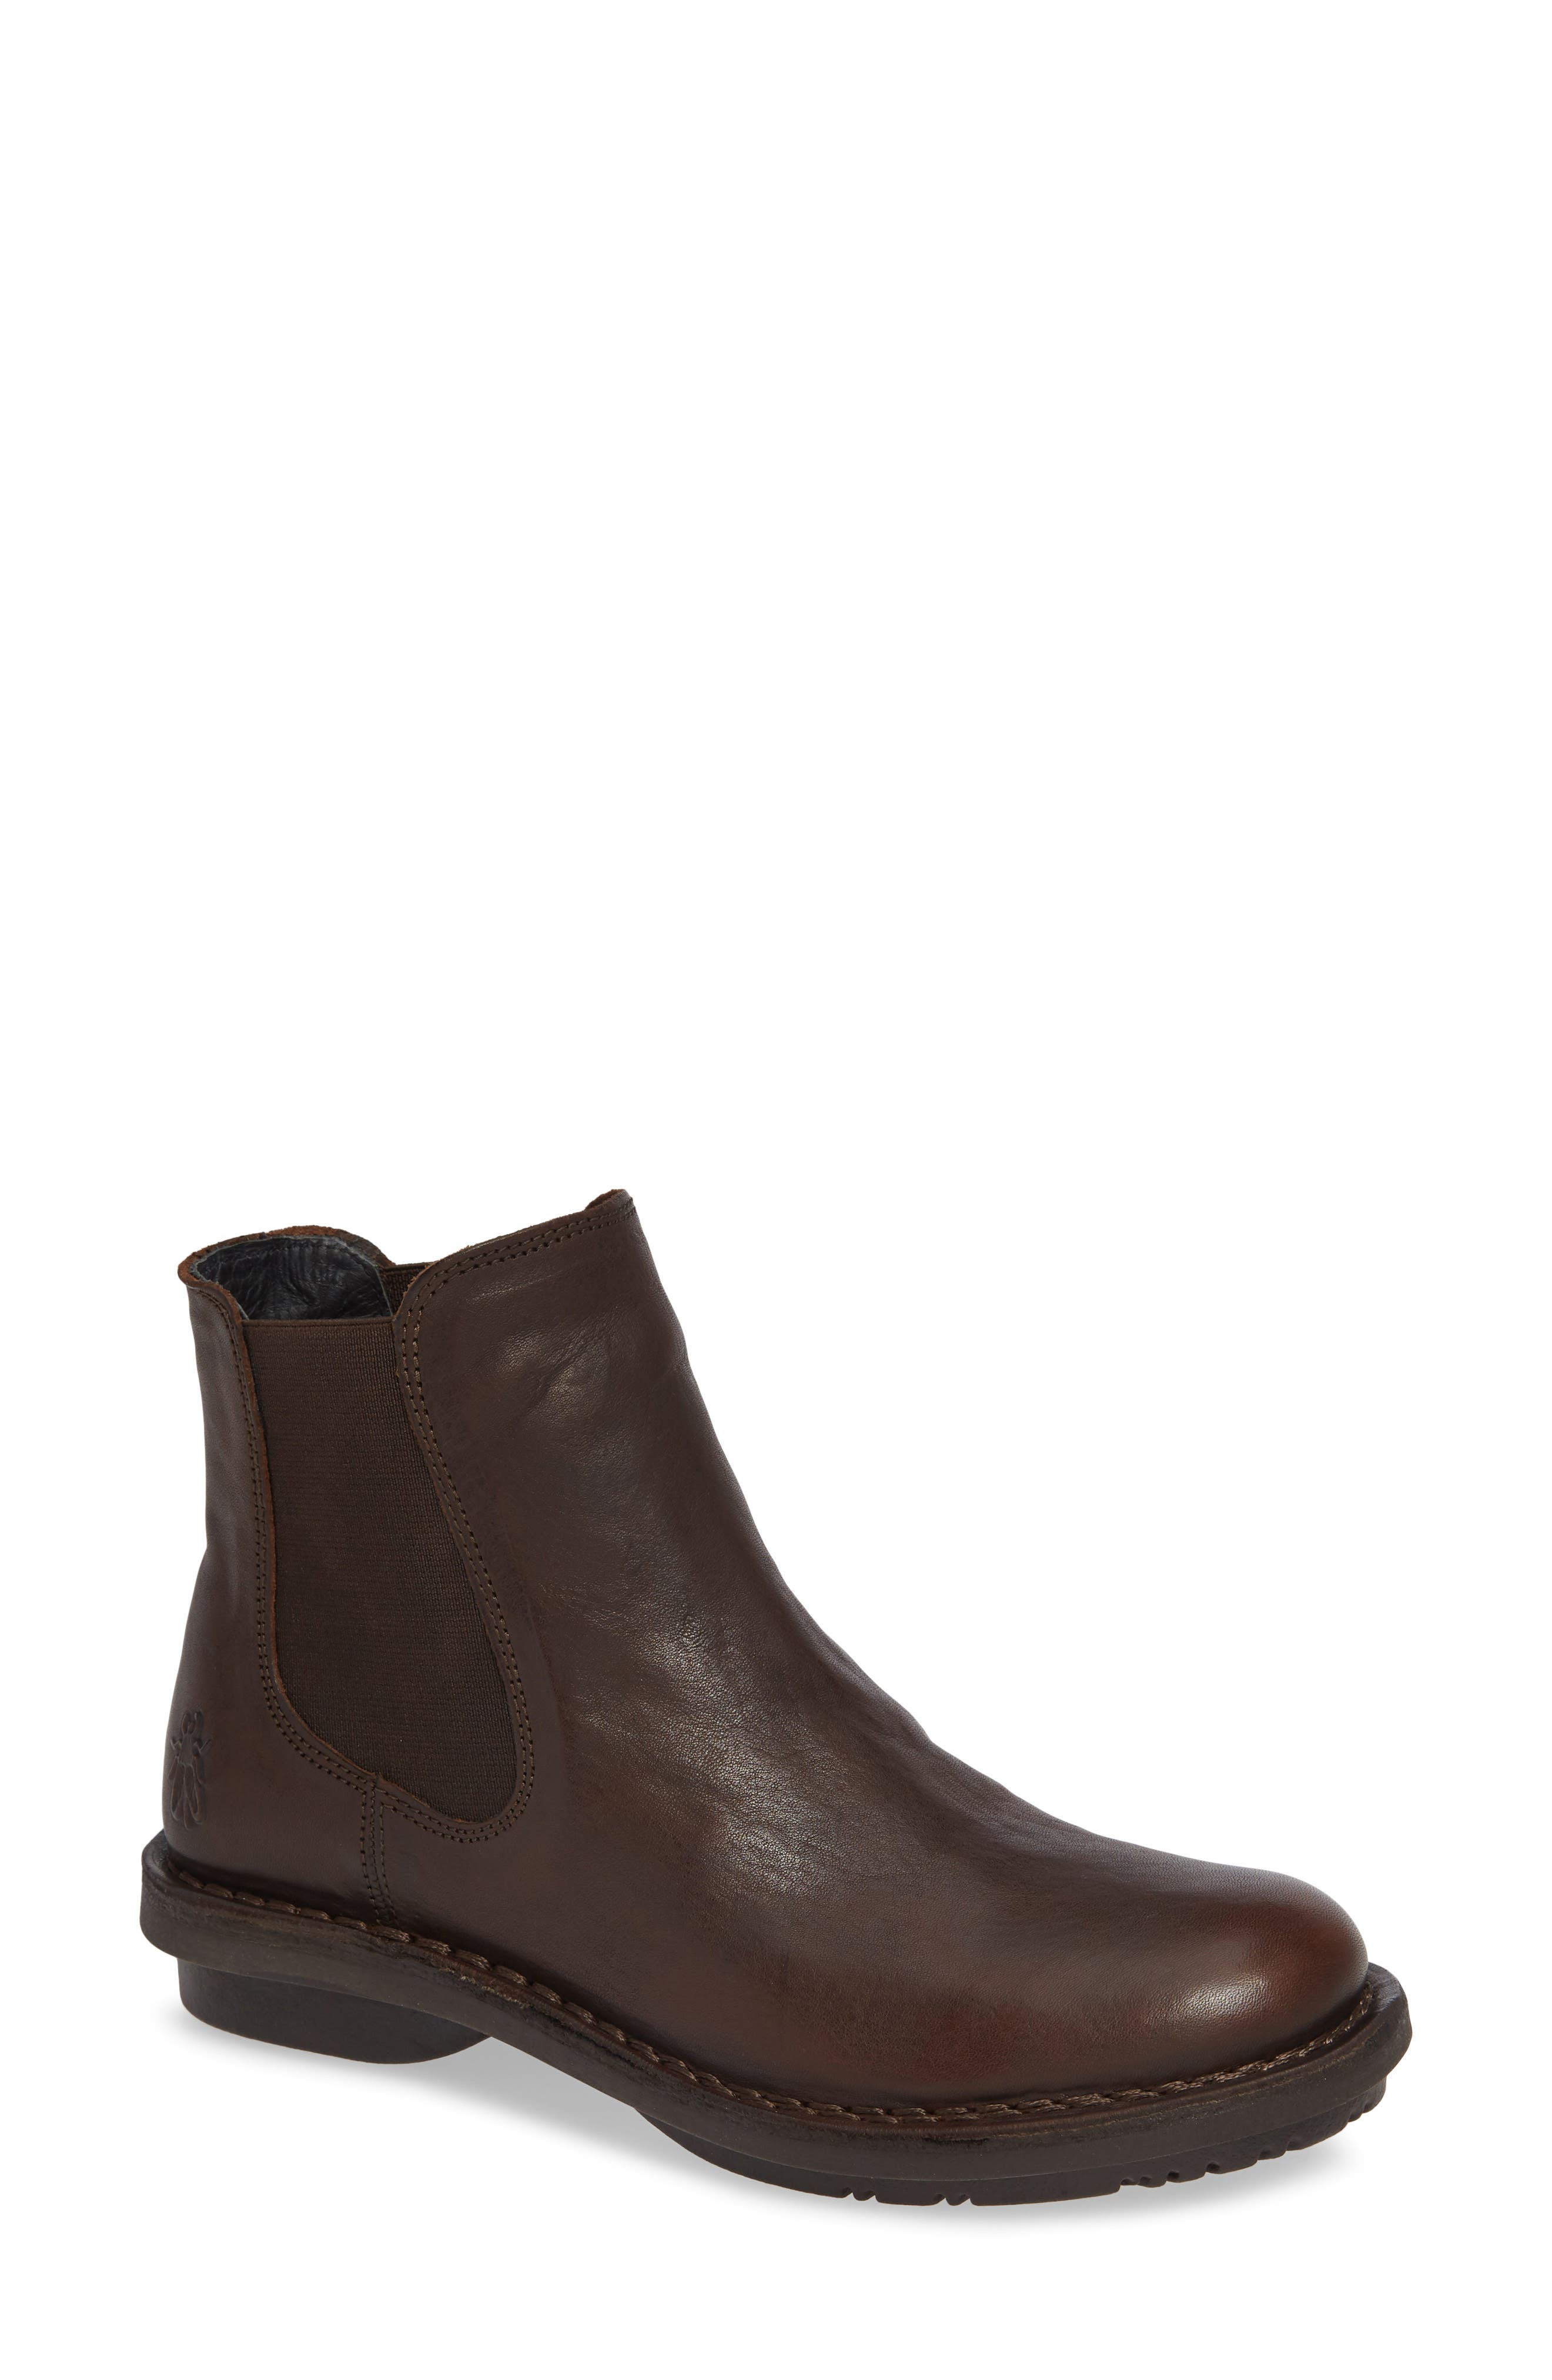 Feed Chelsea Bootie,                         Main,                         color, BROWN